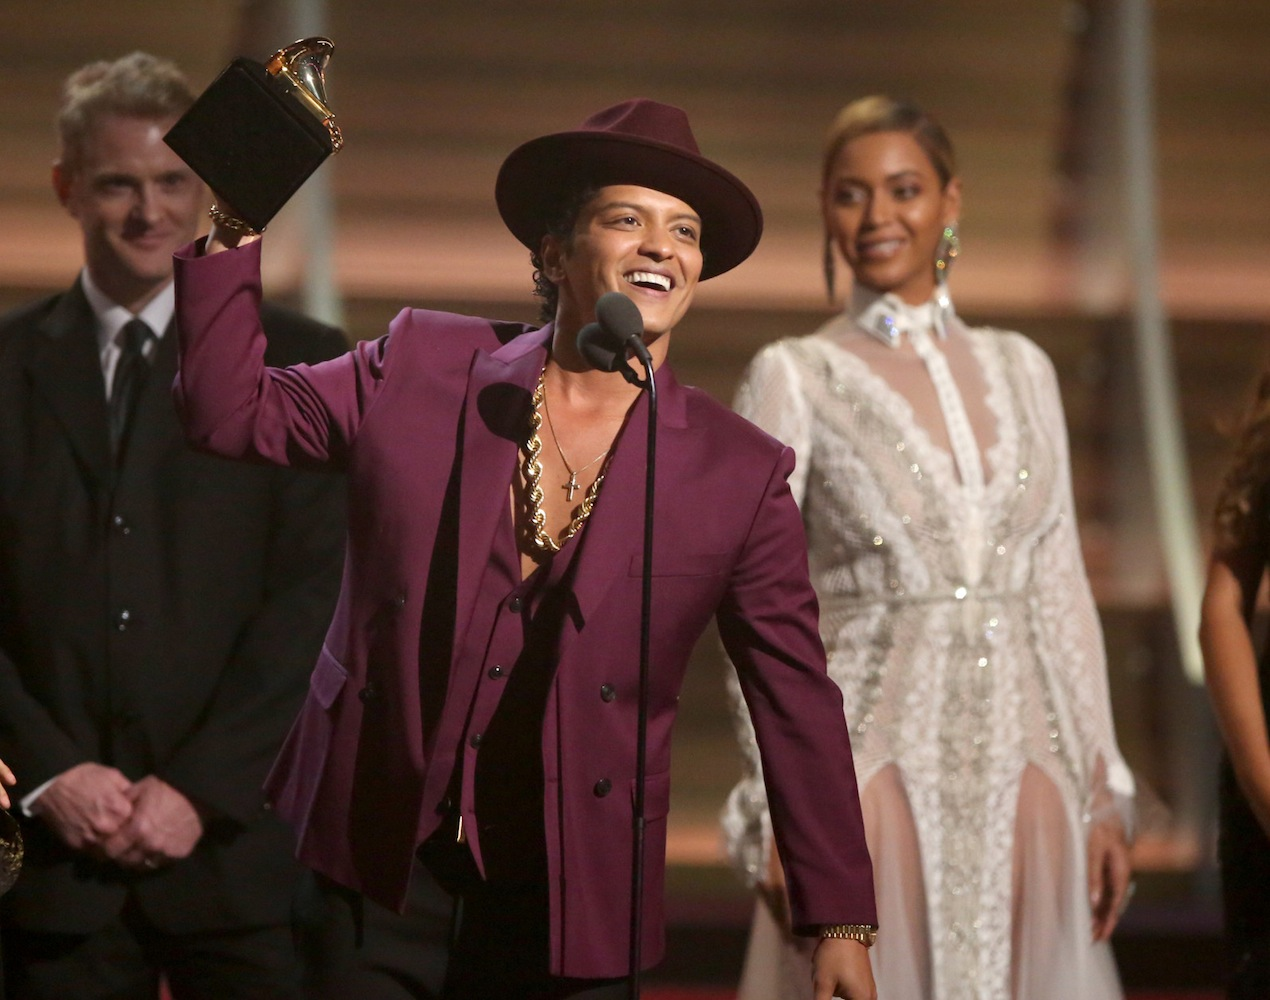 Bruno Mars accept the award for record of the year for Uptown Funk.